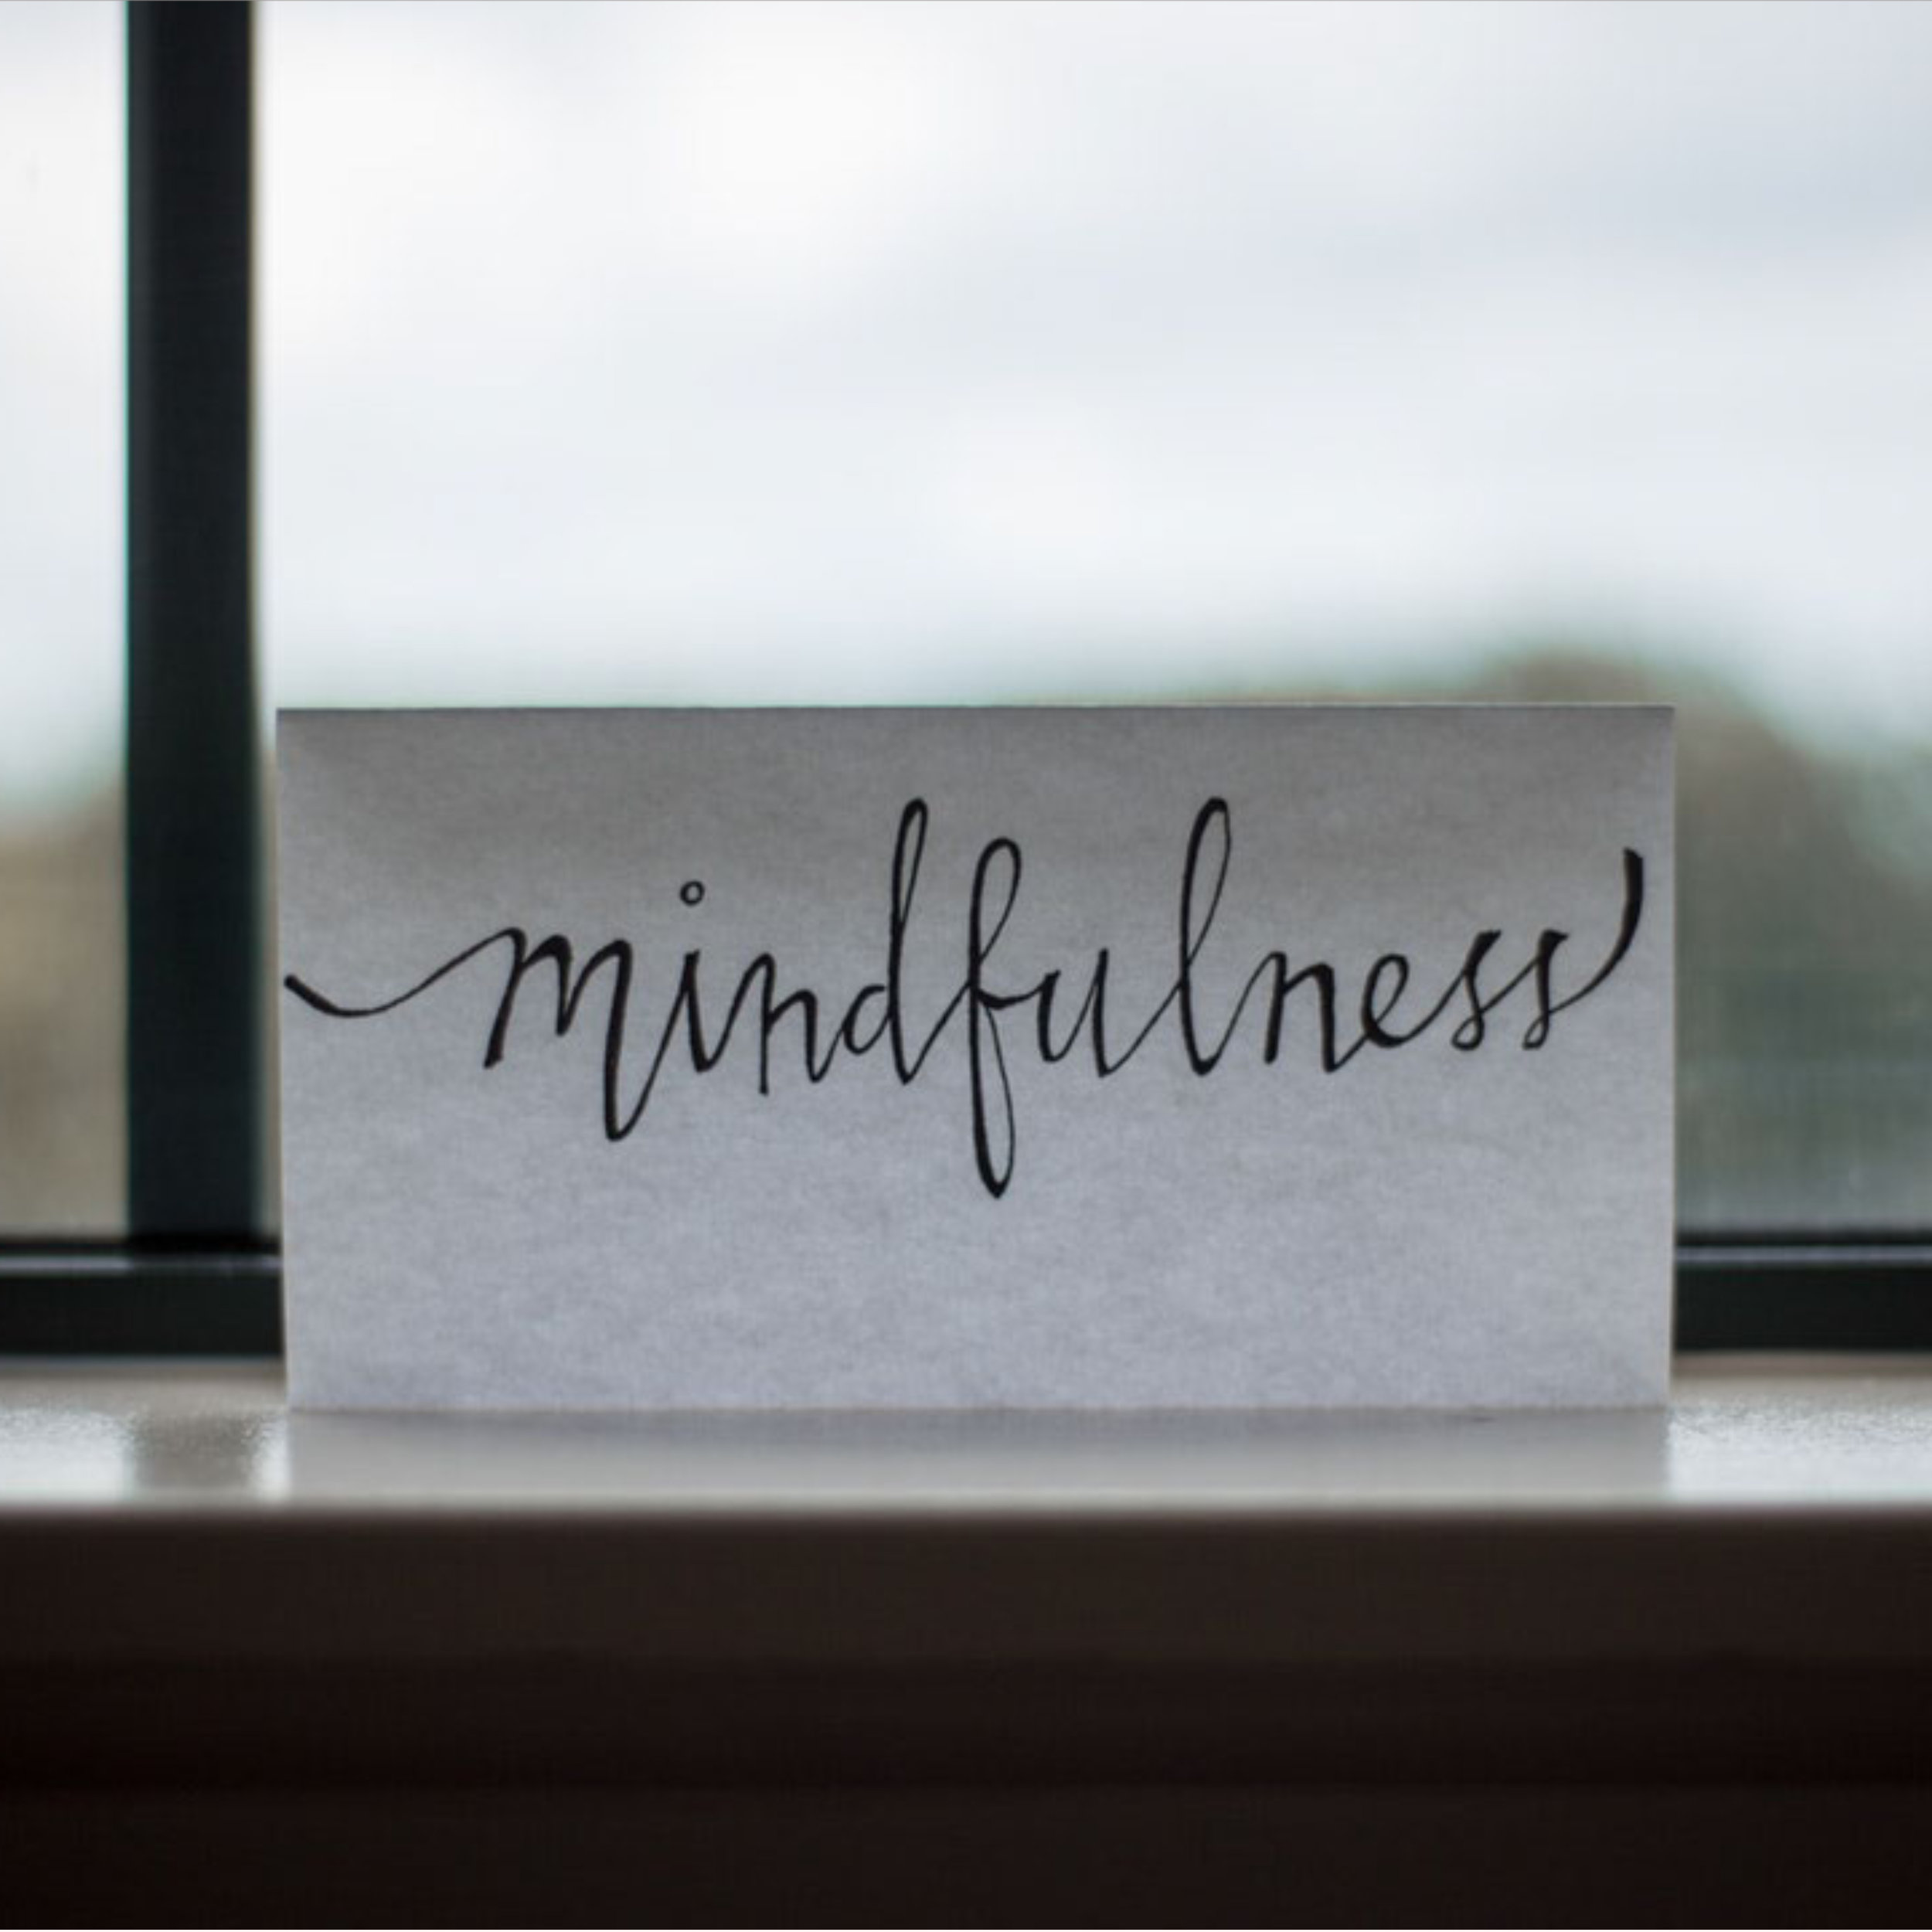 A little bit of mindfulness, will surely go a long way.